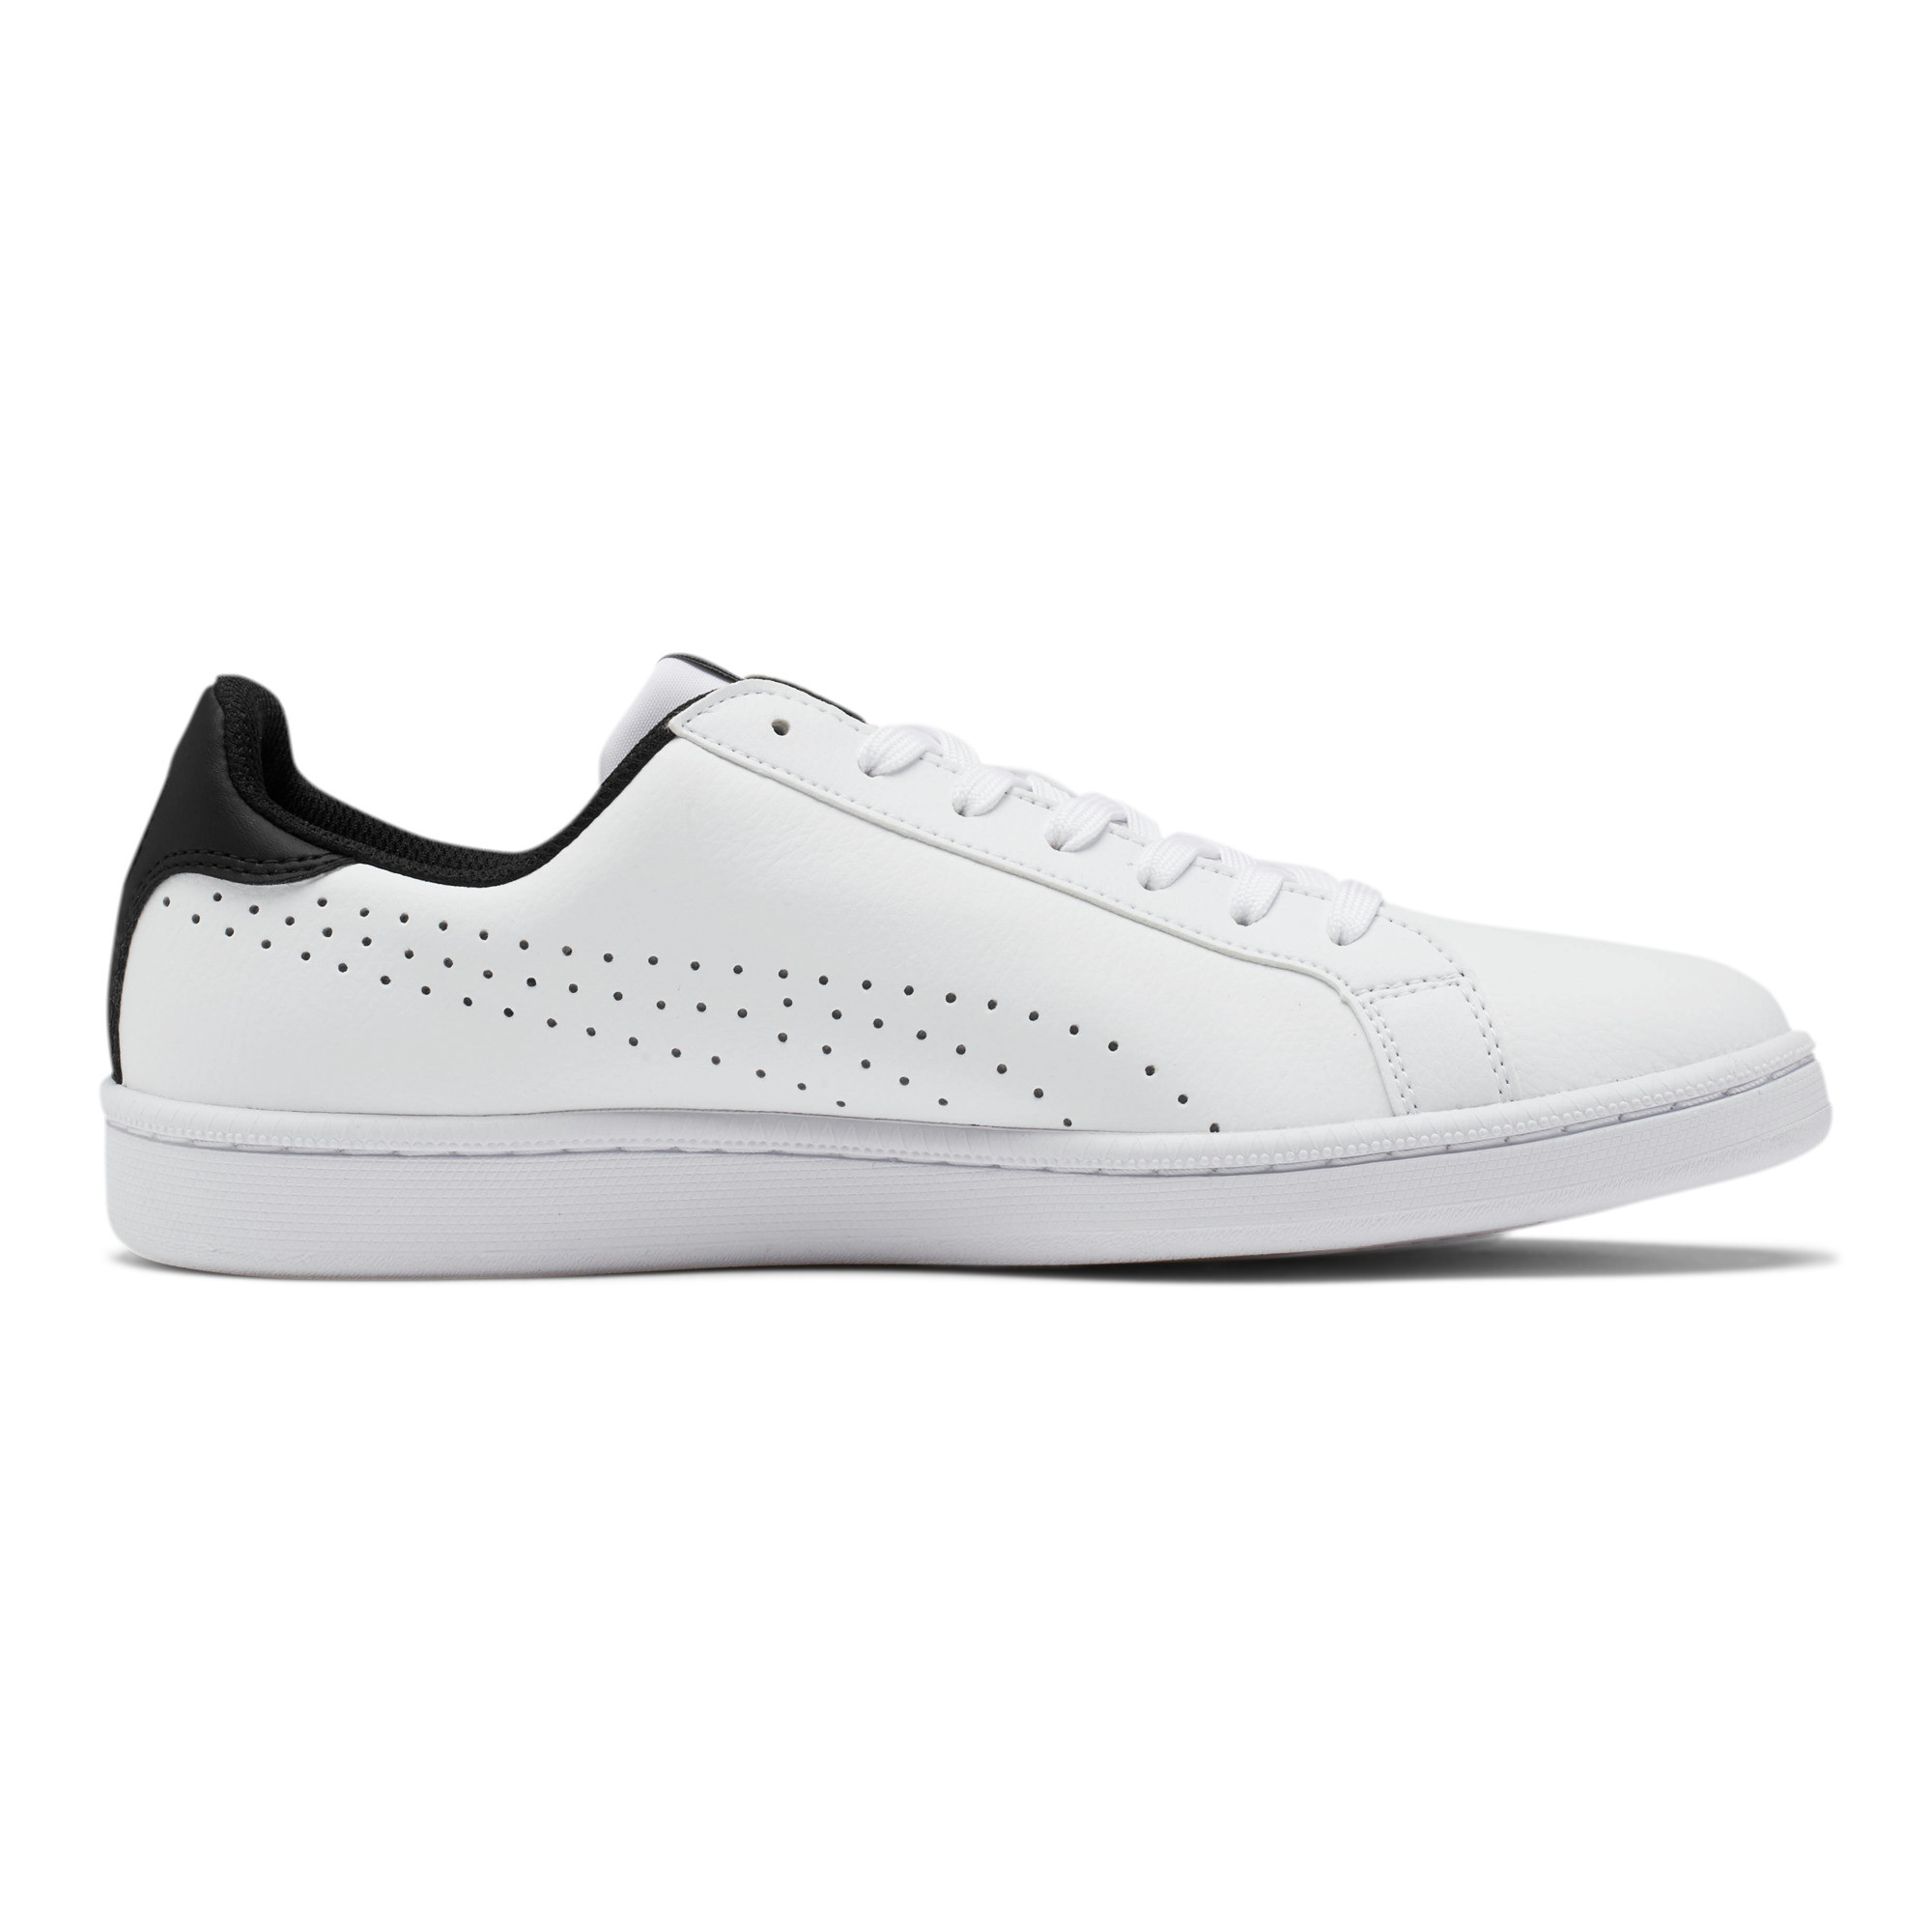 PUMA-PUMA-Smash-Perf-Men-039-s-Sneakers-Men-Shoe-Basics thumbnail 16